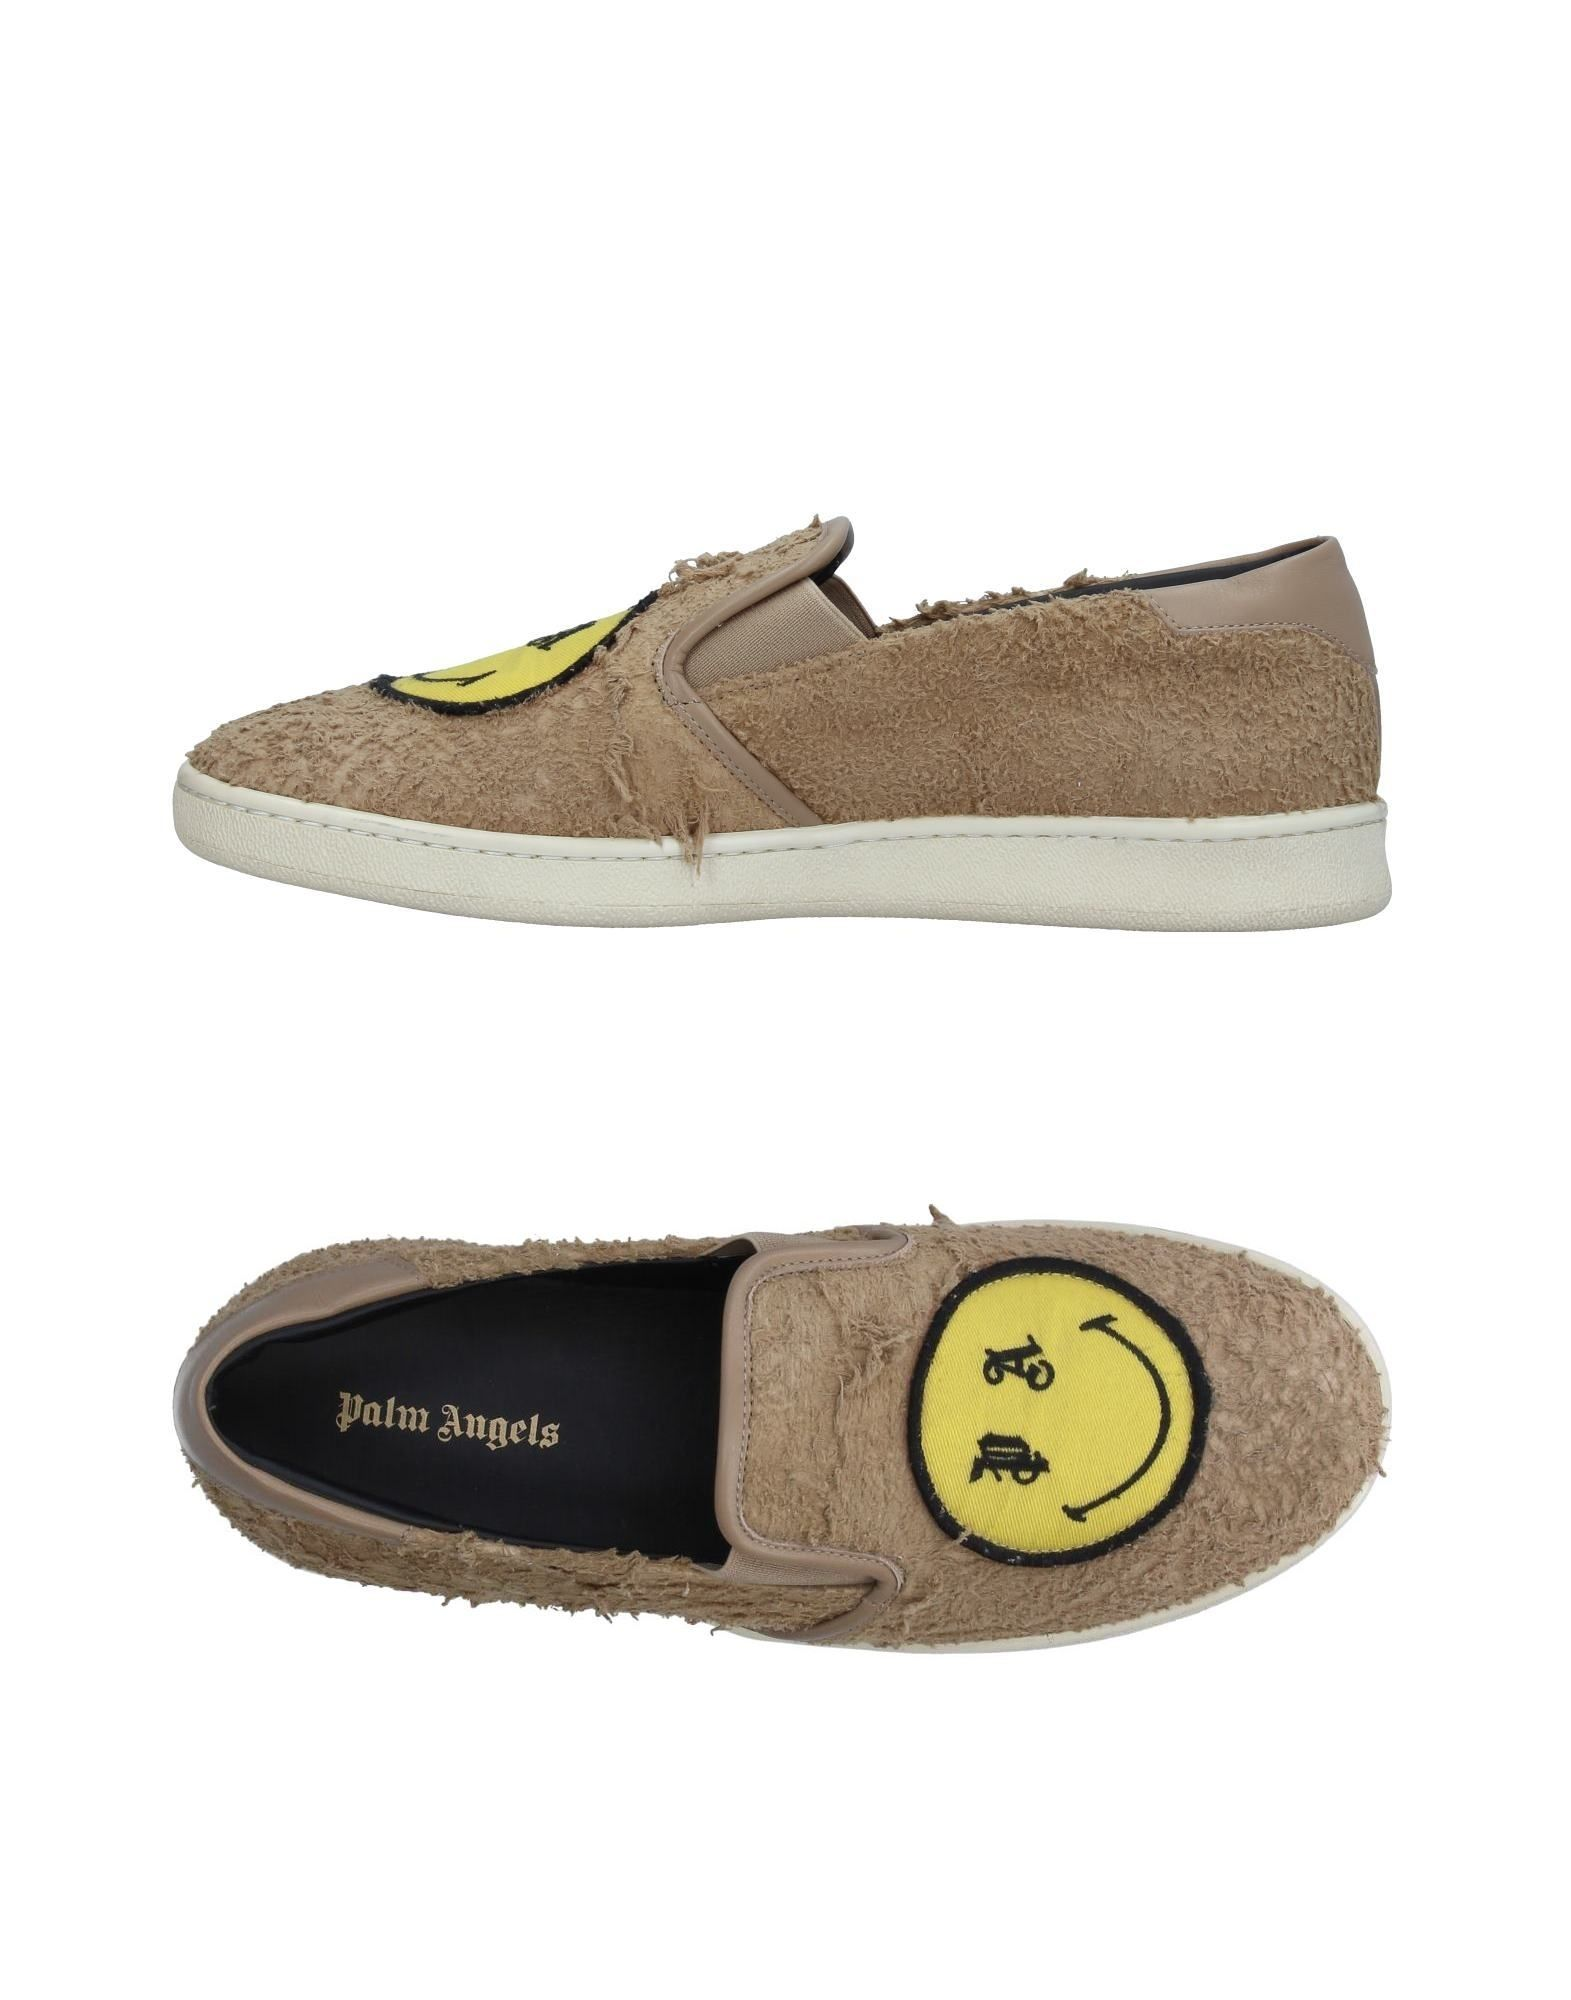 Sneakers Palm Angels Uomo - Acquista online su